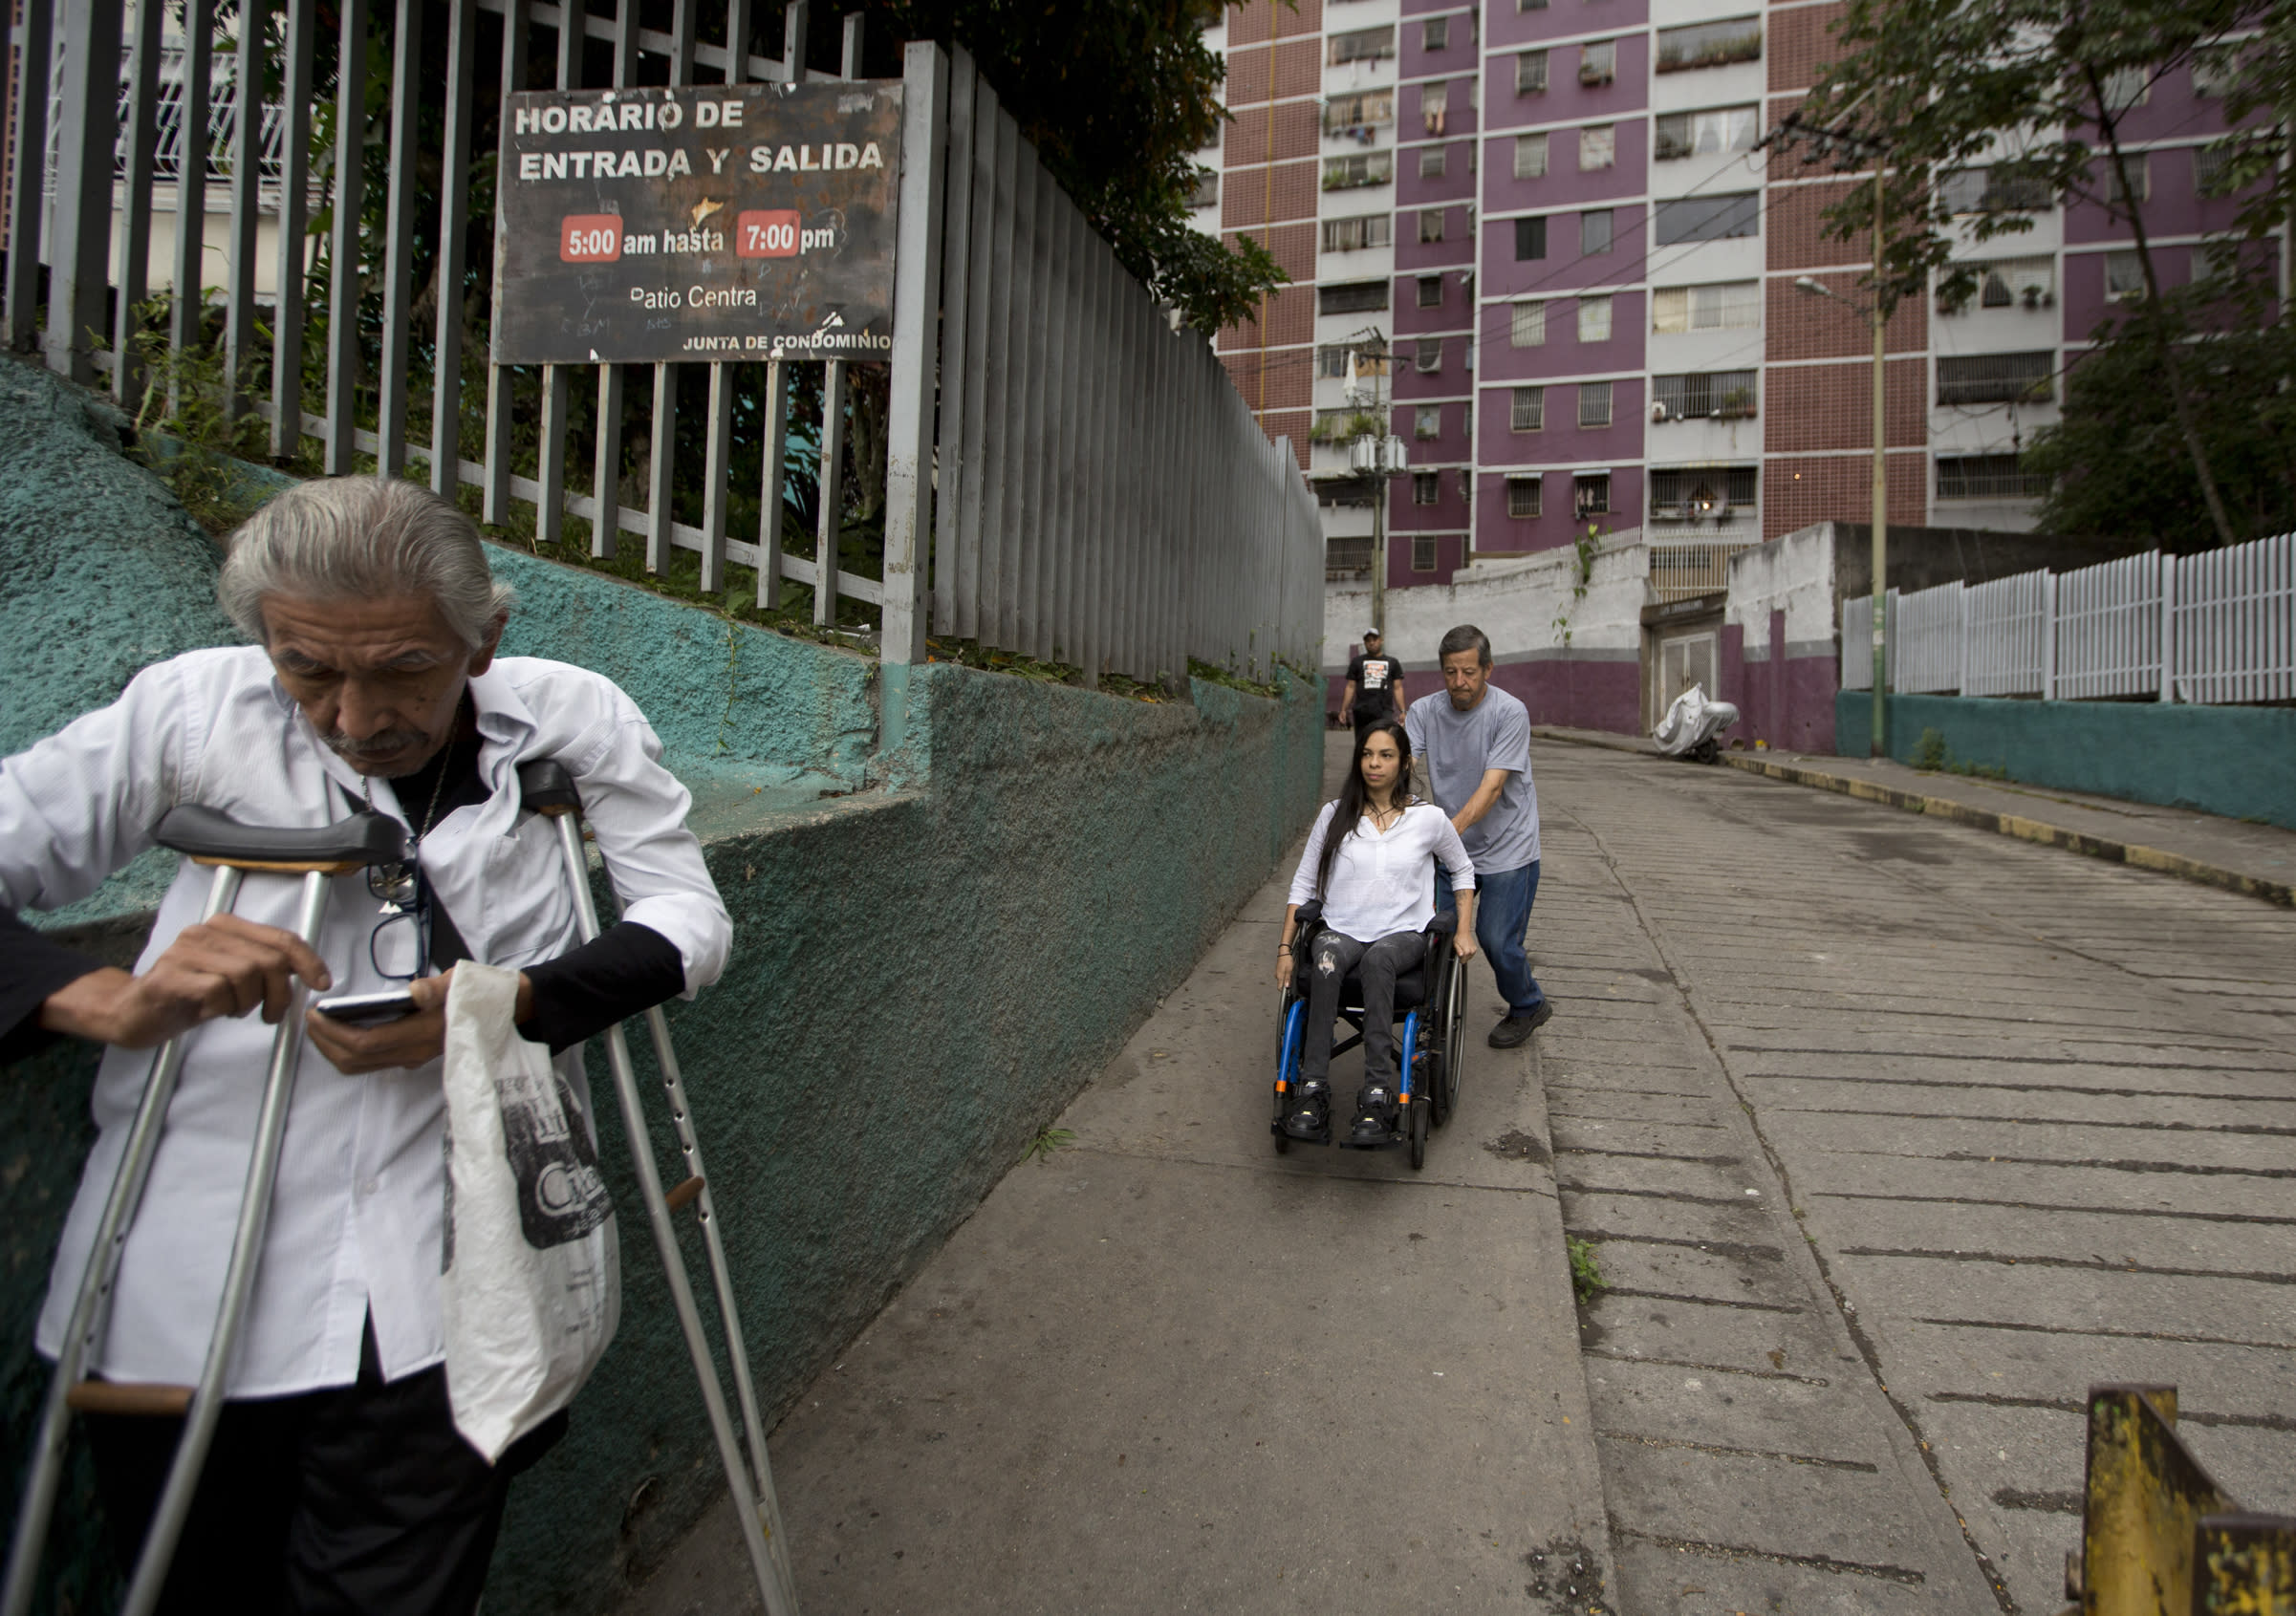 In this Dec. 17, 2018 photo, neighbor Dixon Rosales helps dancer Iraly Yanez negotiate her wheelchair on a downhill path, in Caracas, Venezuela. A stray bullet crushed Yanez's aspirations of becoming a professional dancer eight years ago as it ruptured two of her vertebrae and left her paraplegic. (AP Photo/Fernando Llano)